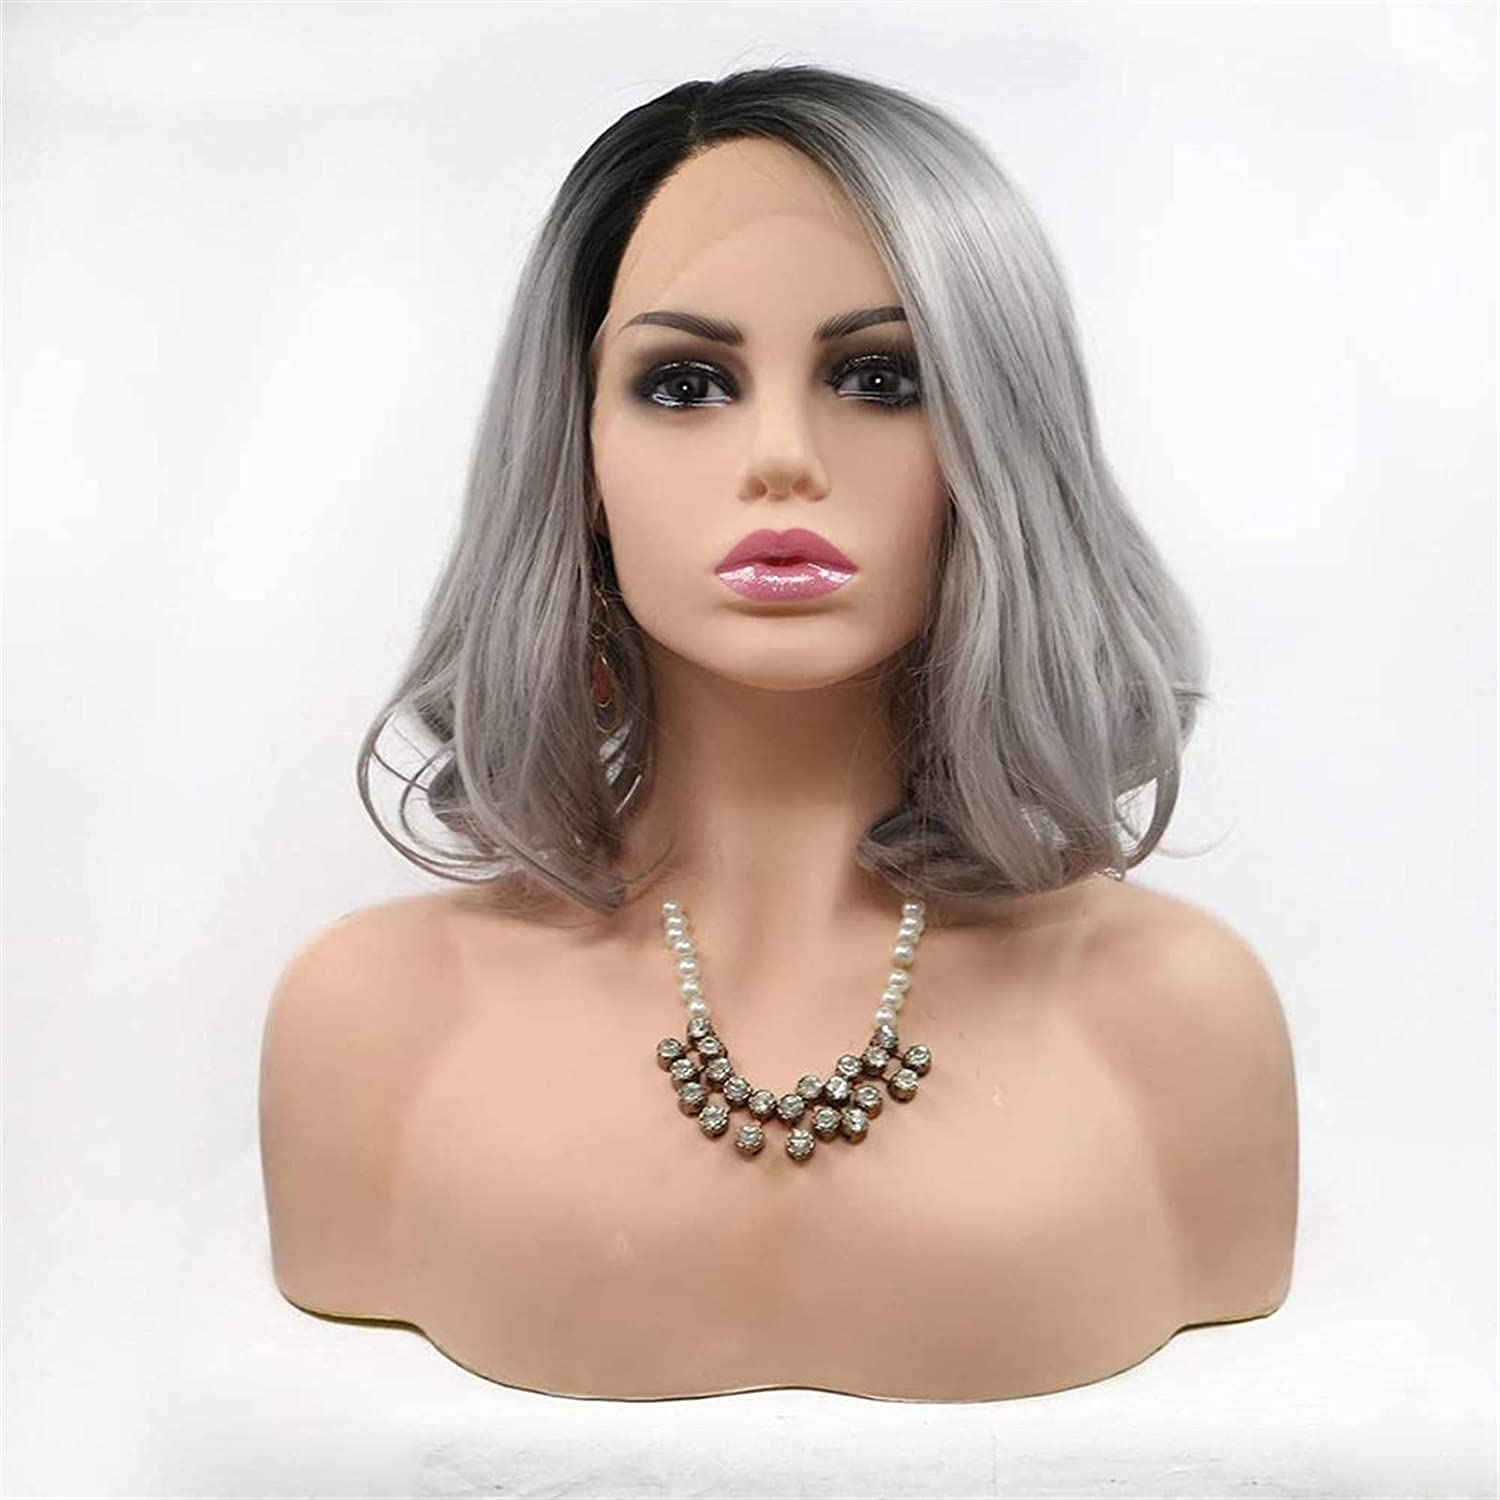 Wigs Wig flaxen gray short hair curly wig Our shop most popular lace lady Eur shopping handmade